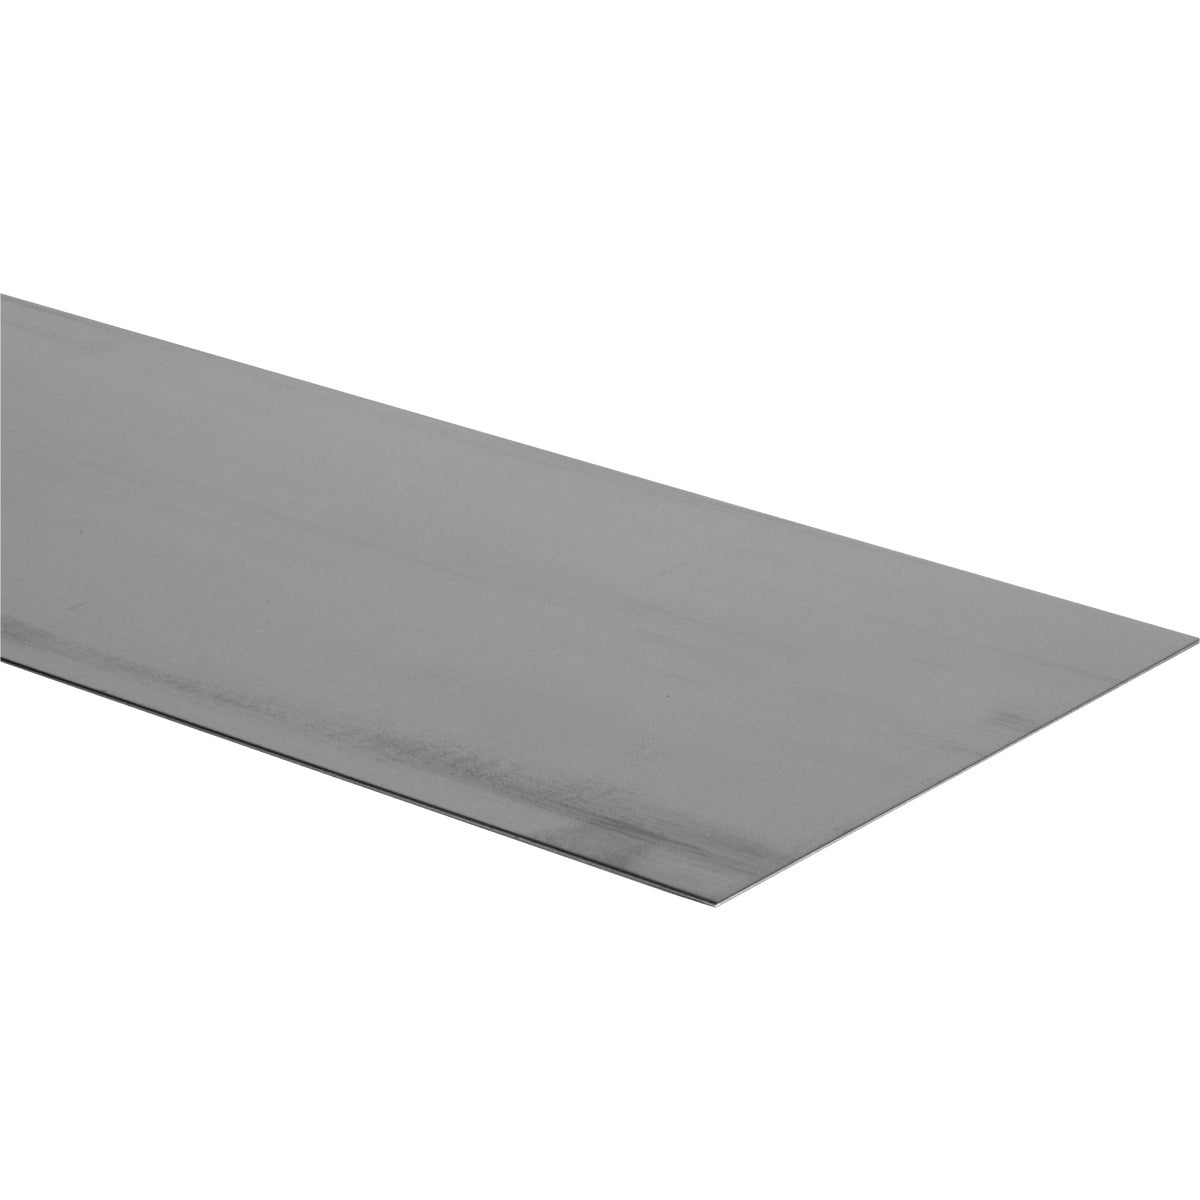 12X24 22GA STEEL SHEET - N215764 by National Mfg Co